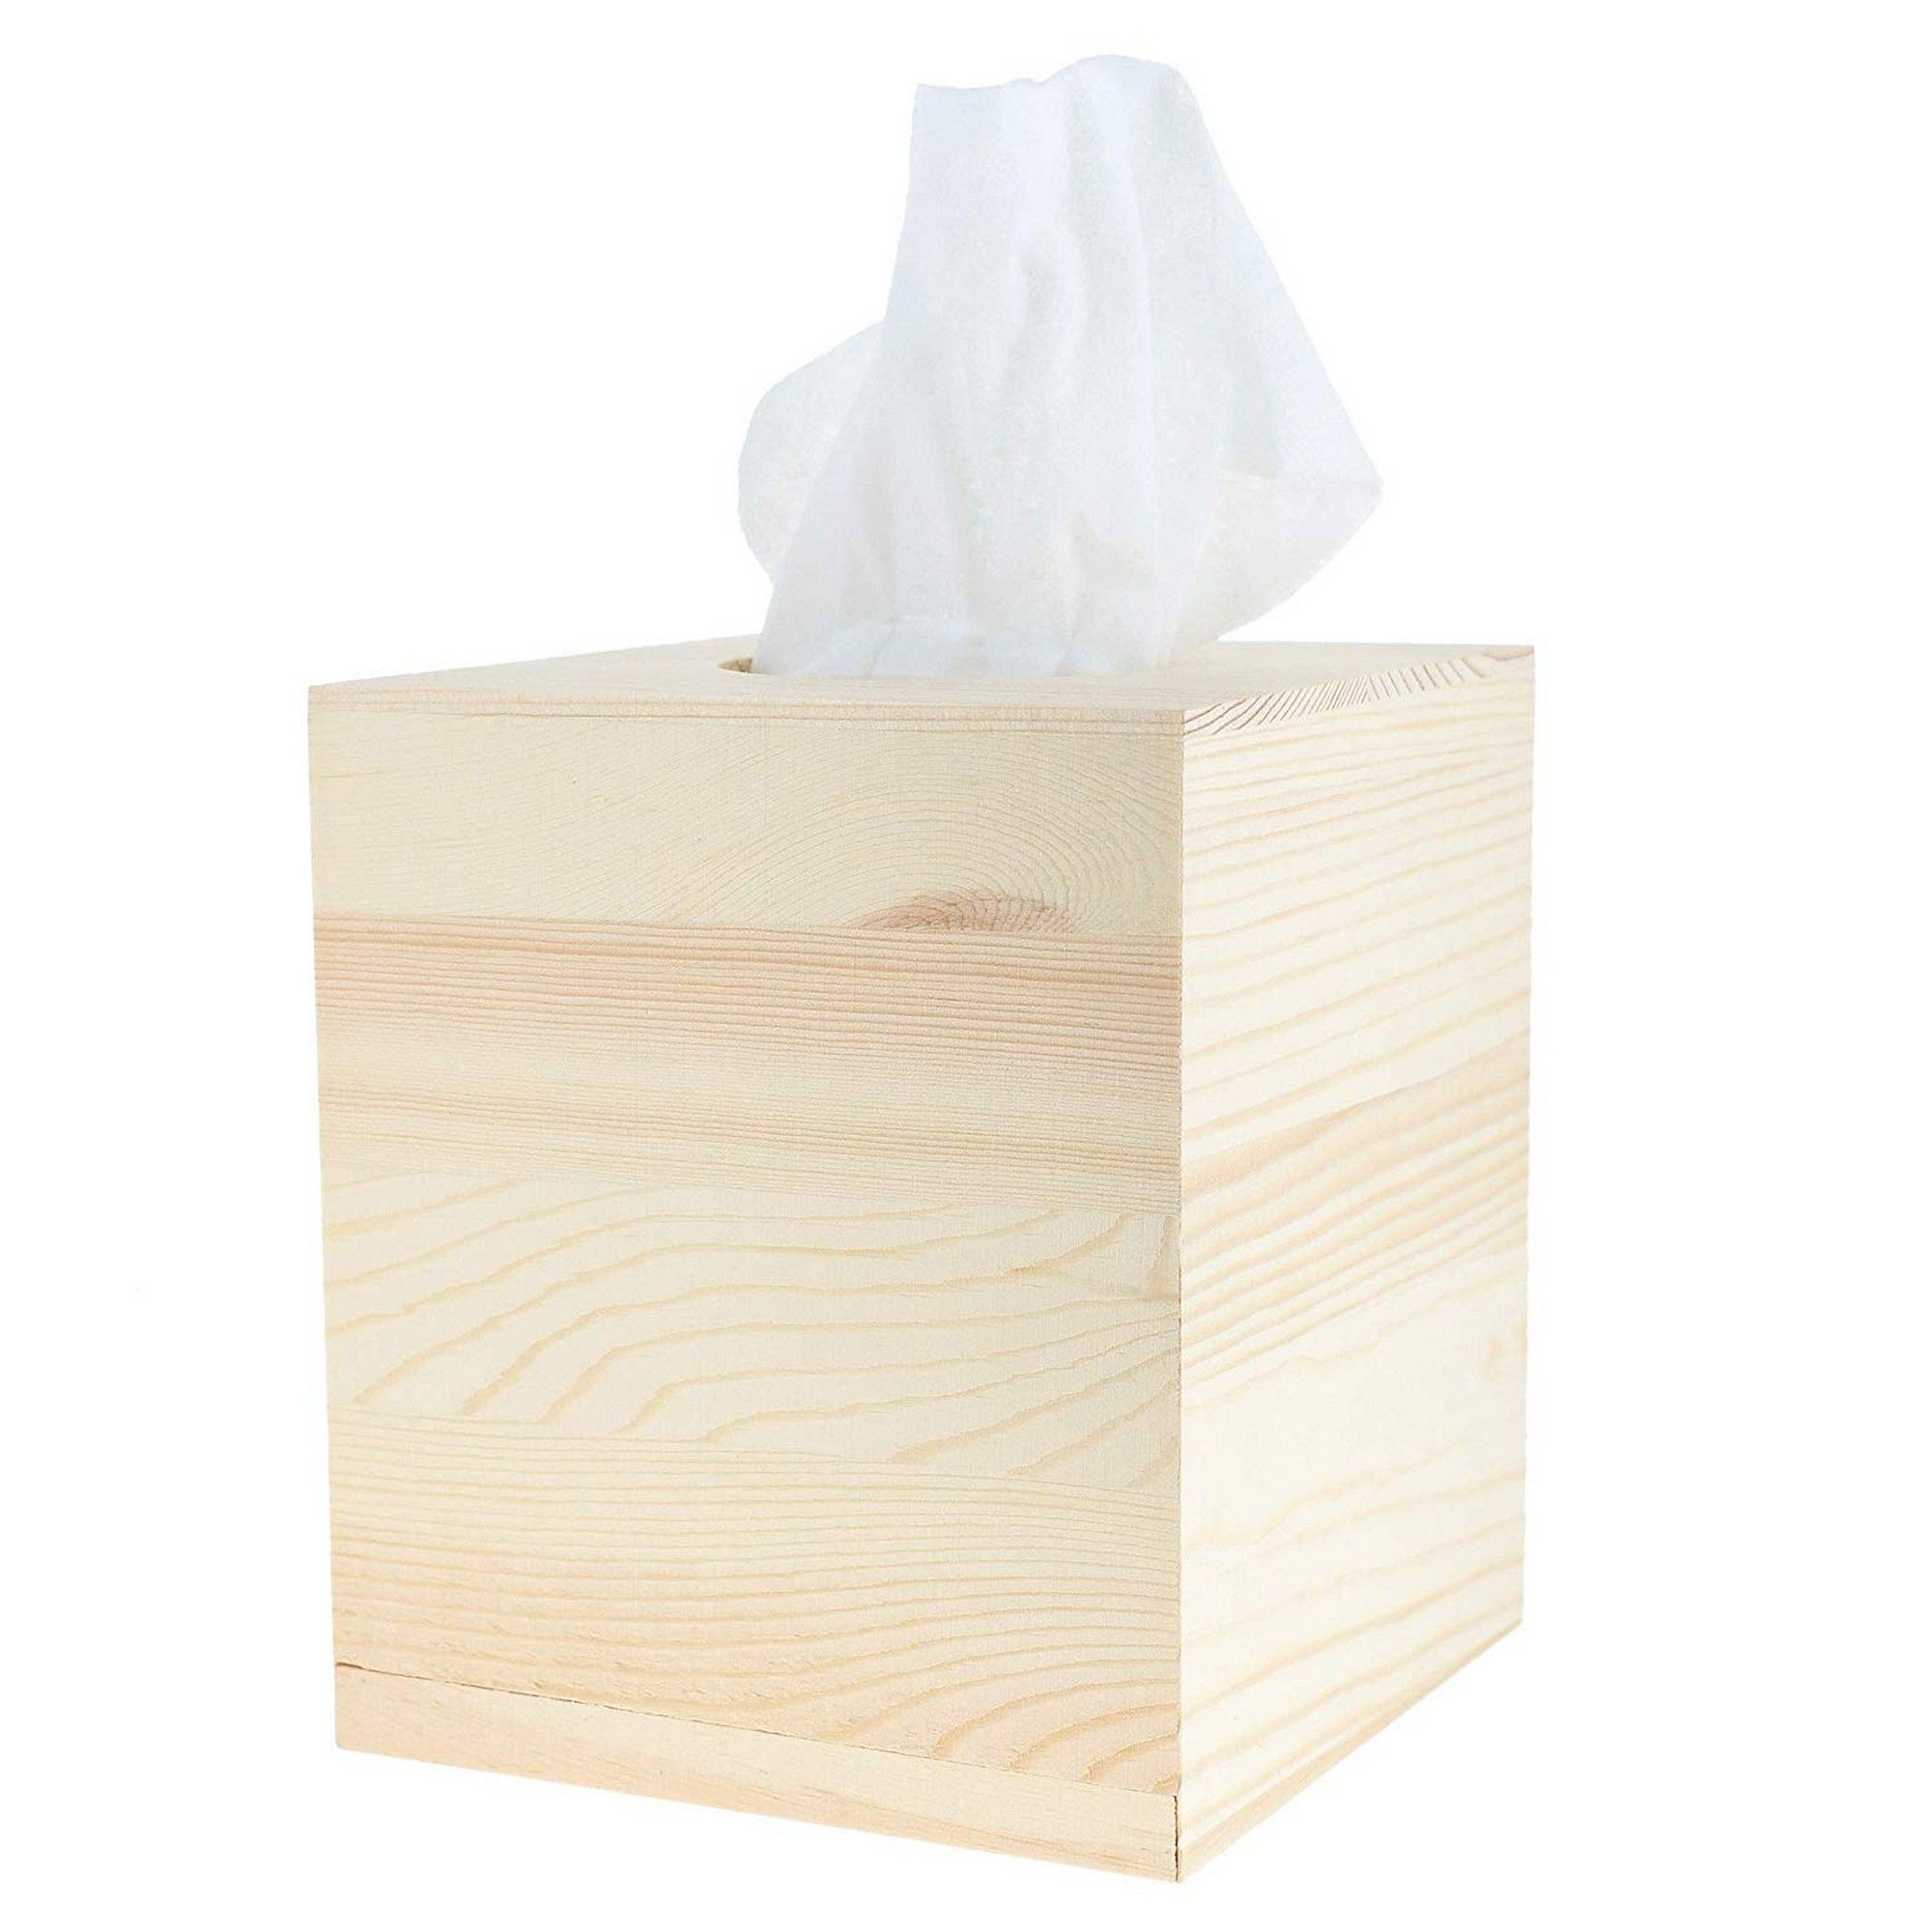 DIY Tissue Box for Bathroom Juvale Unfinished Wood Tissue Box Cover Bedroom Night Stand 5.06 x 5.06 x 5.875 Inches Natural Wood Facial Tissue Box Holder